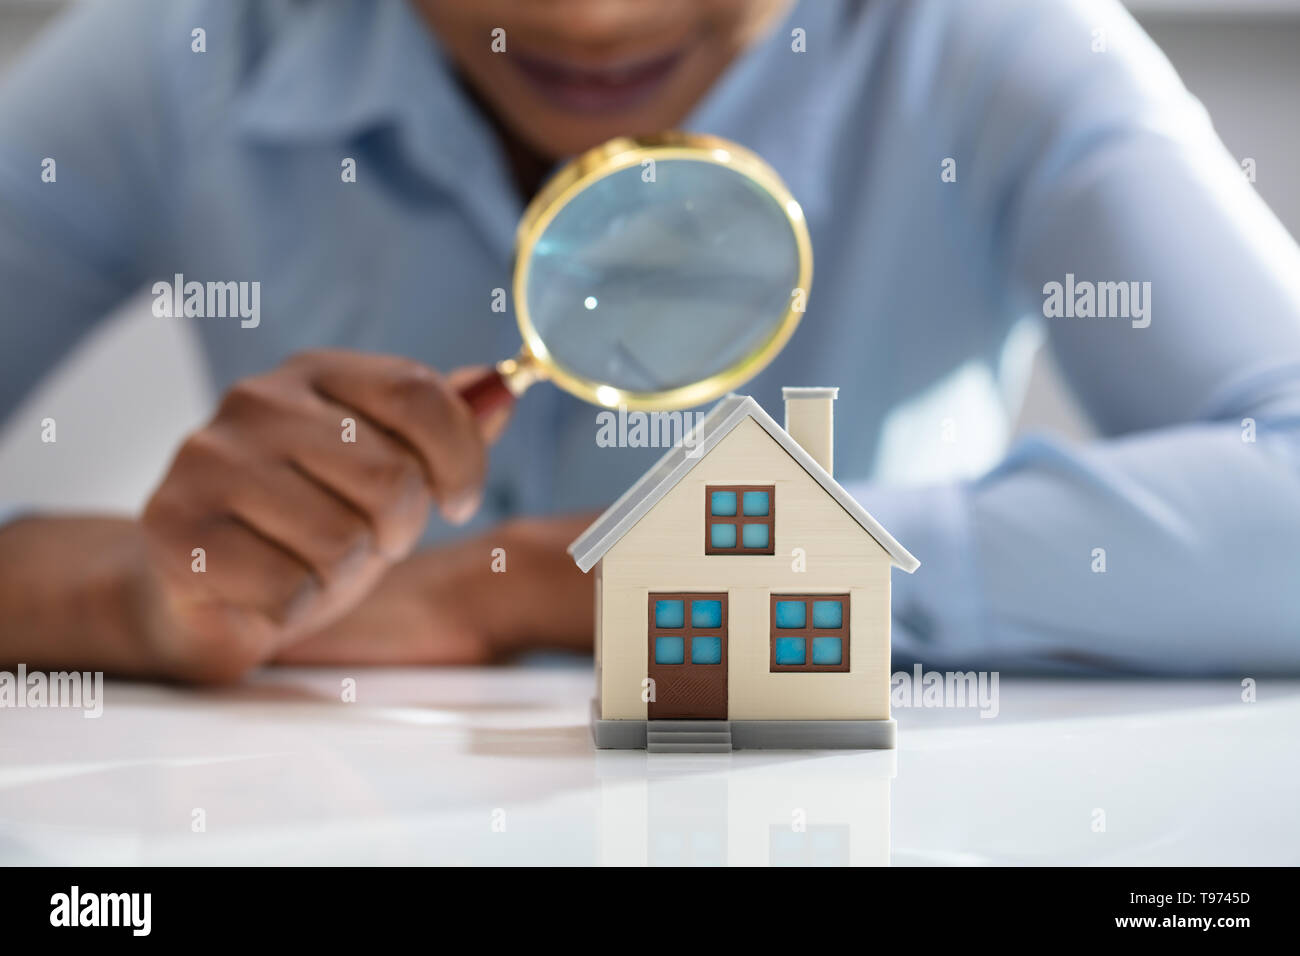 Close-up Of A Businesswoman's Hand Holding Magnifying Glass Over House Model Over Desk Stock Photo